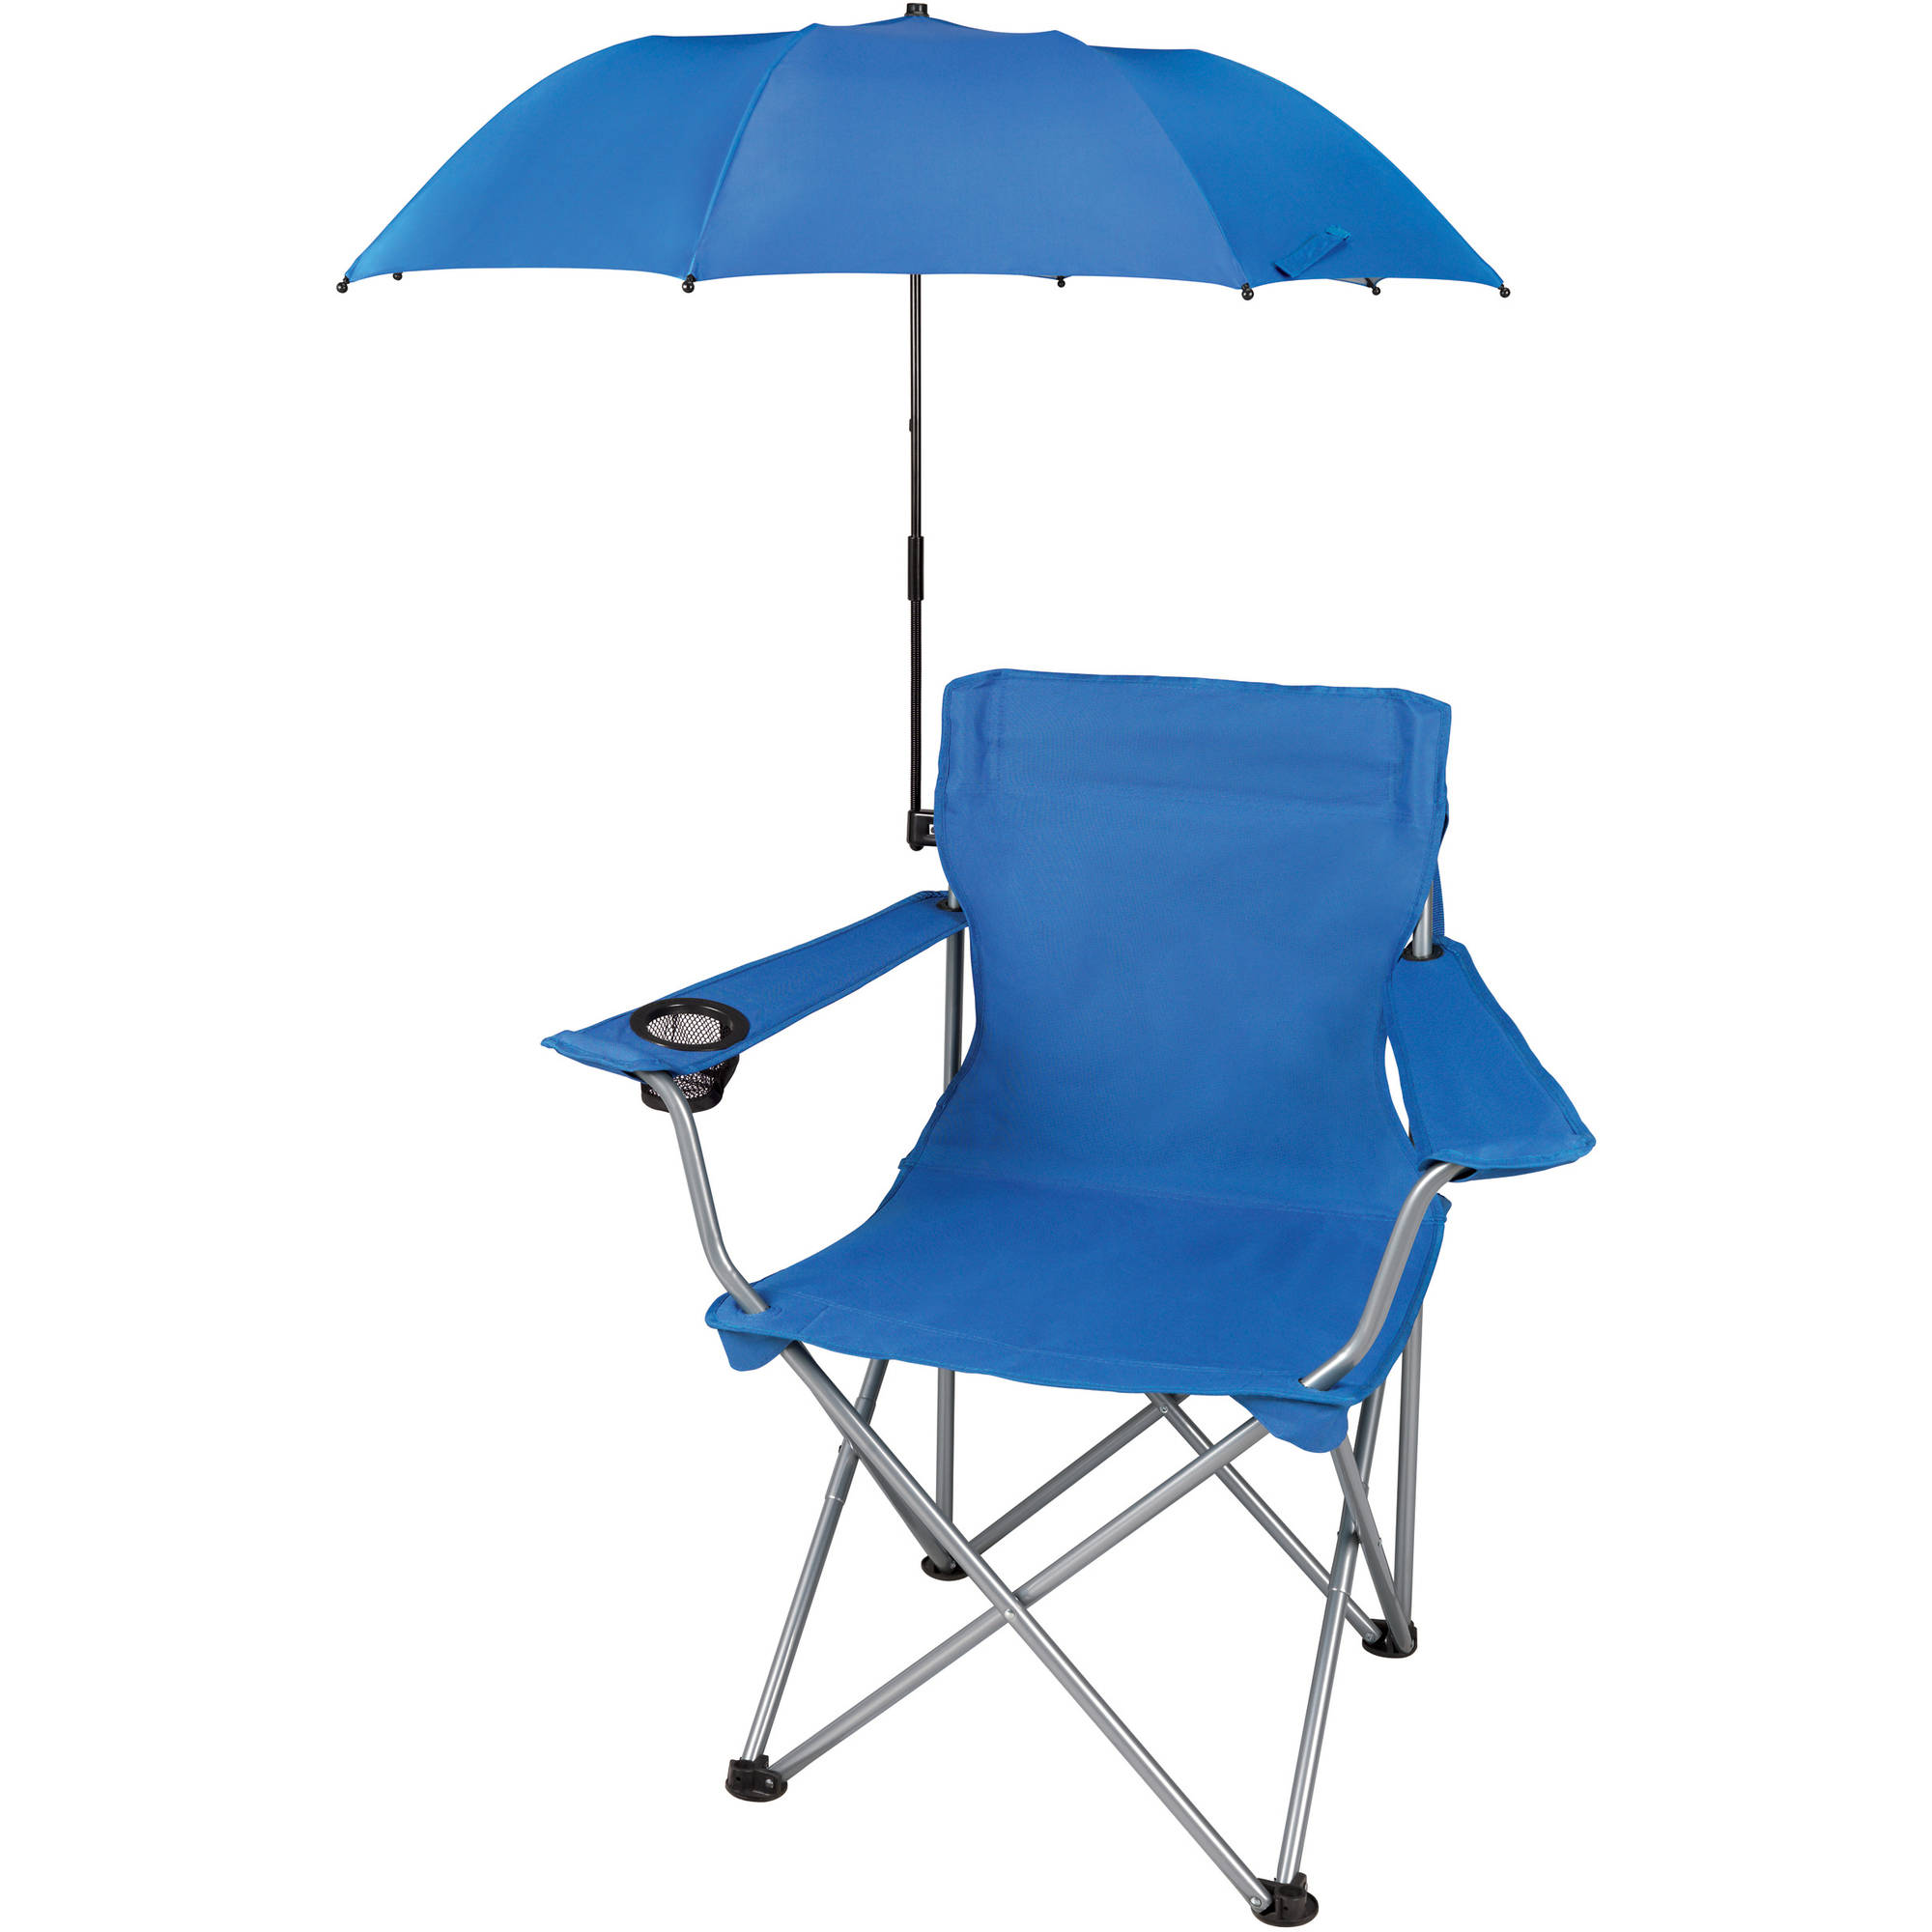 Ozark Trail Westfield Outdoor Chair Umbrella Red chair sold